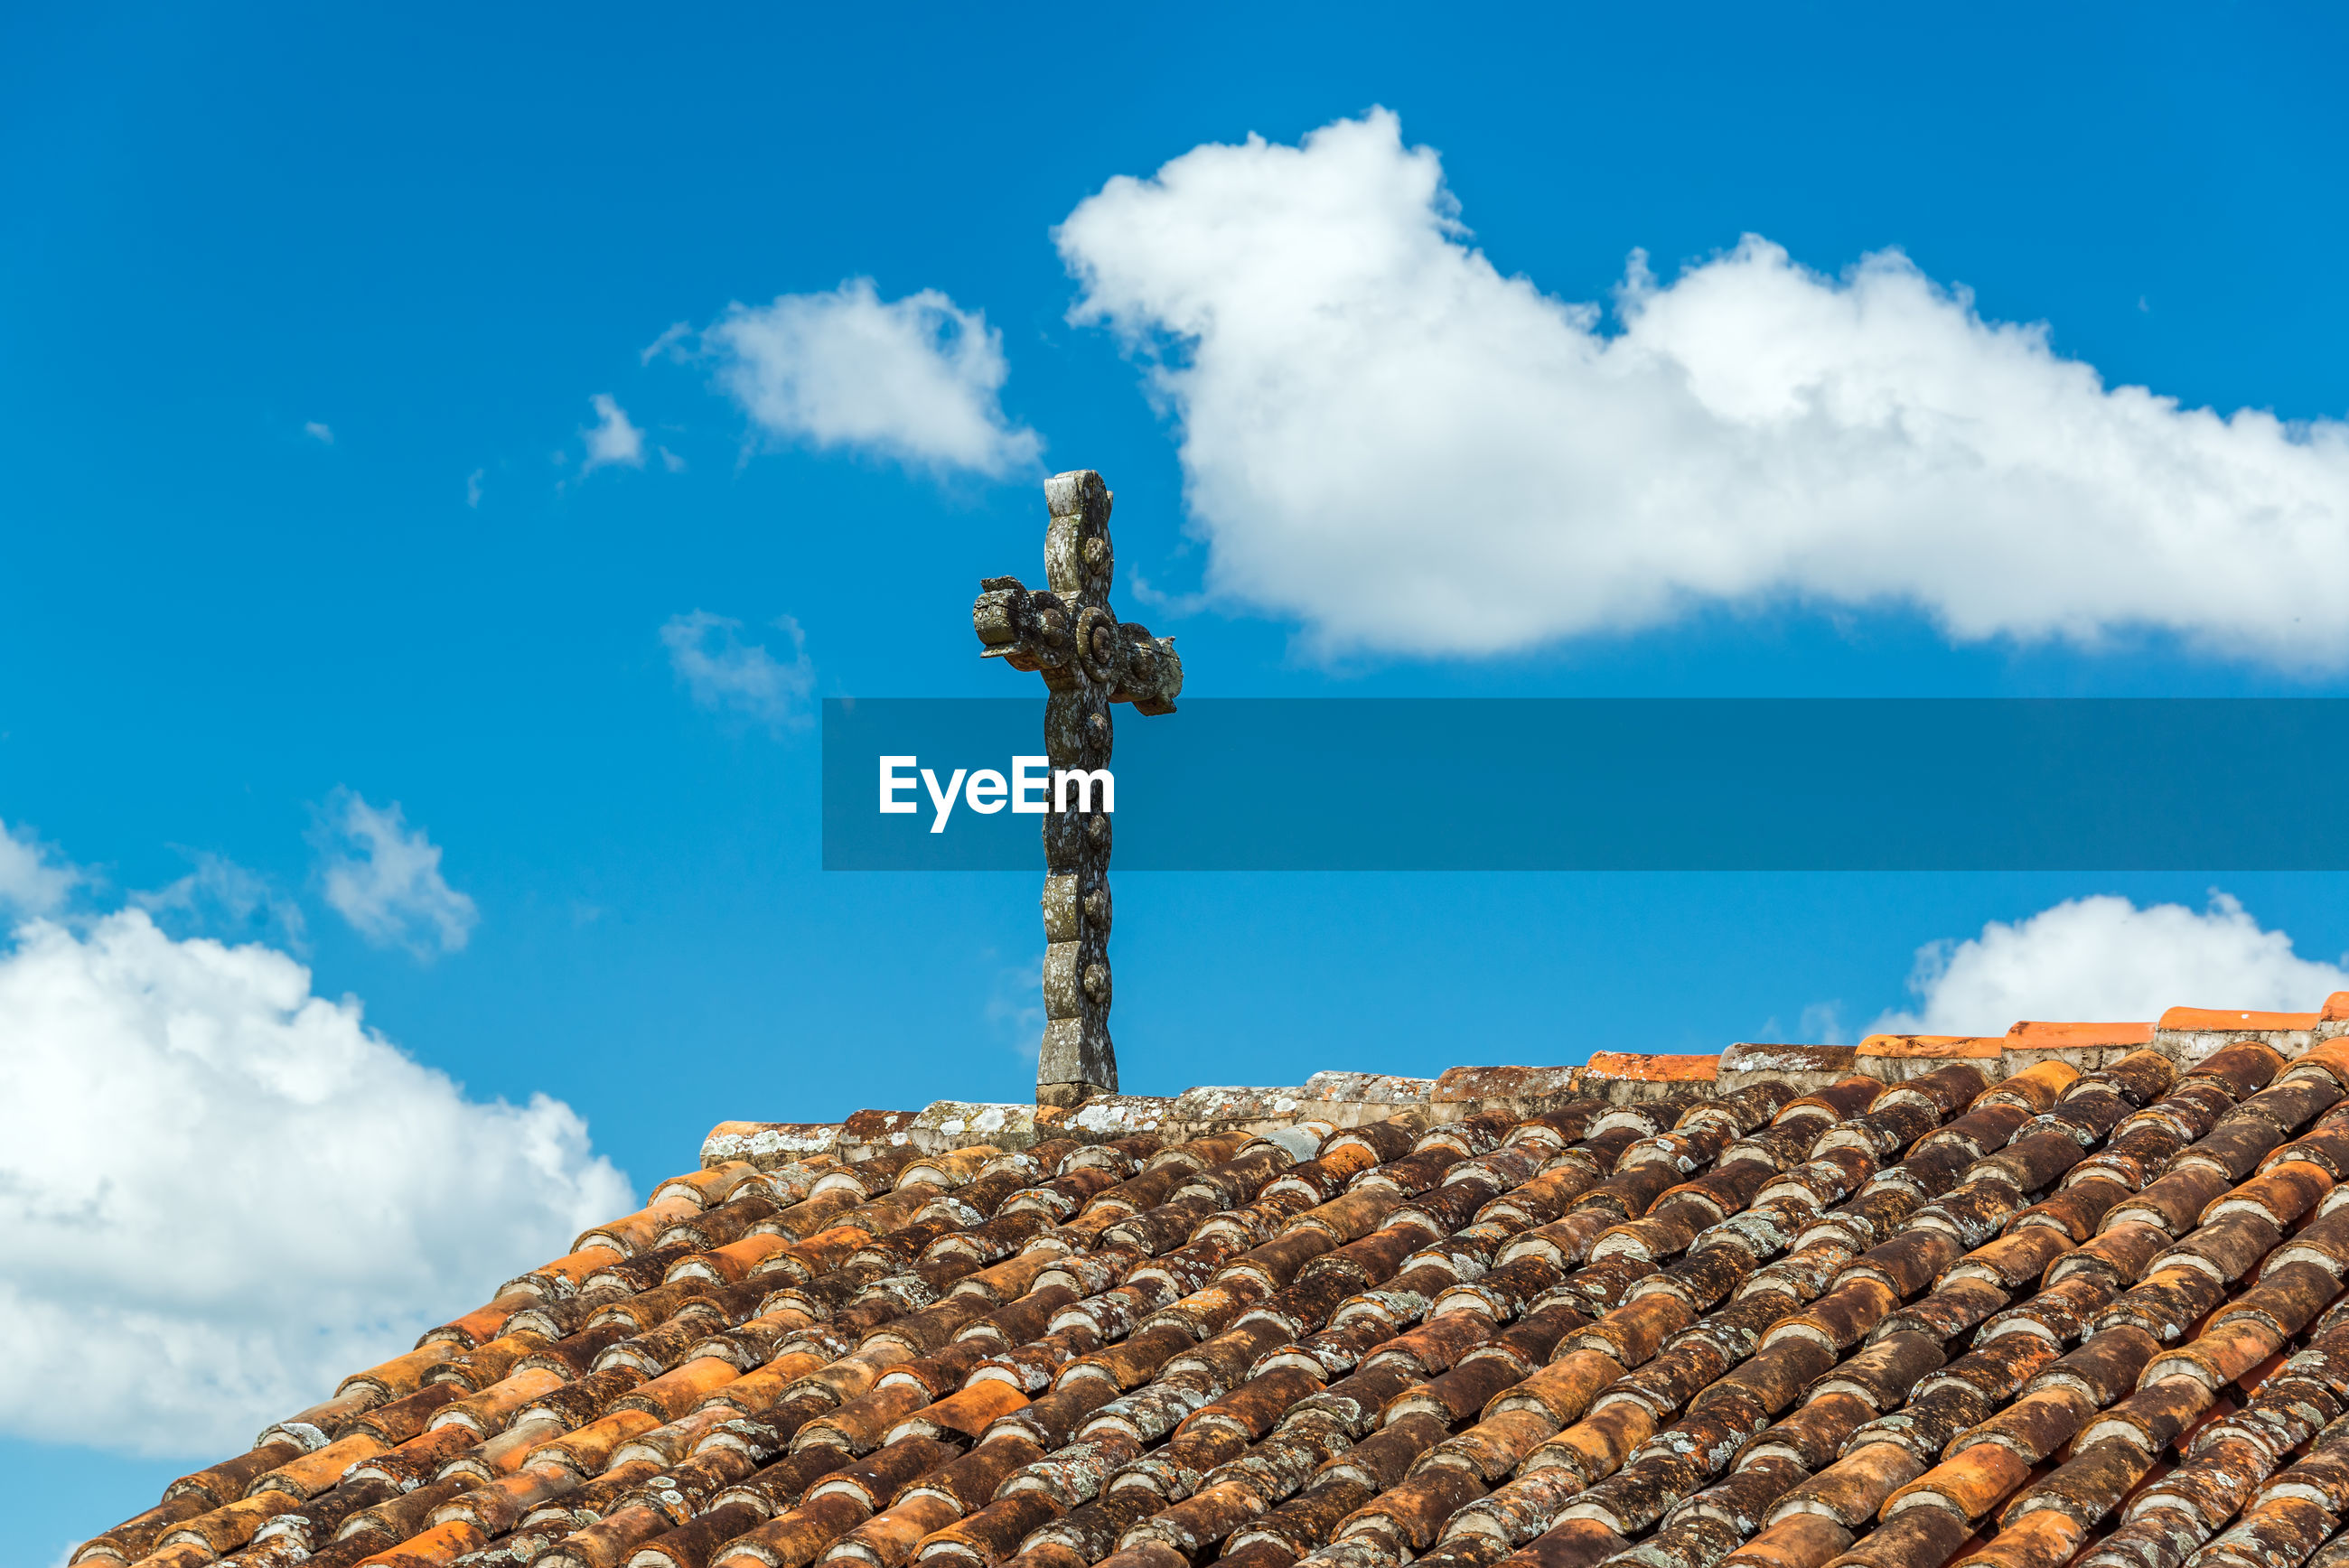 Low angle view of cross over roof tiles against sky